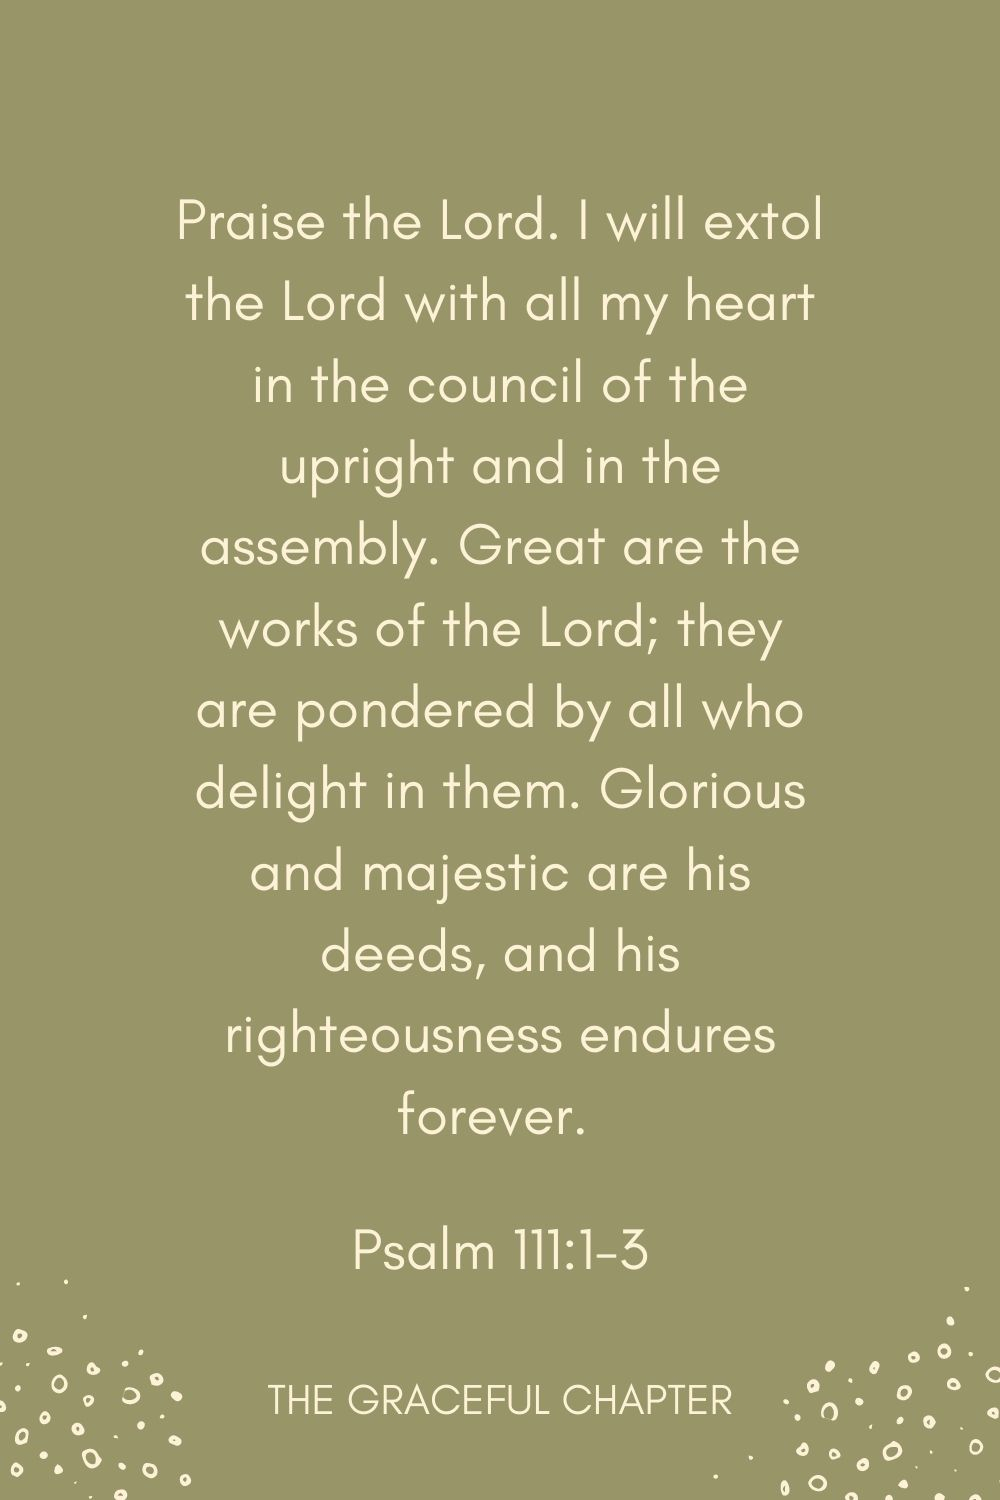 Praise the Lord. I will extol the Lord with all my heart in the council of the upright and in the assembly. Great are the works of the Lord; they are pondered by all who delight in them. Glorious and majestic are his deeds, and his righteousness endures forever.  Psalm 111:1-3